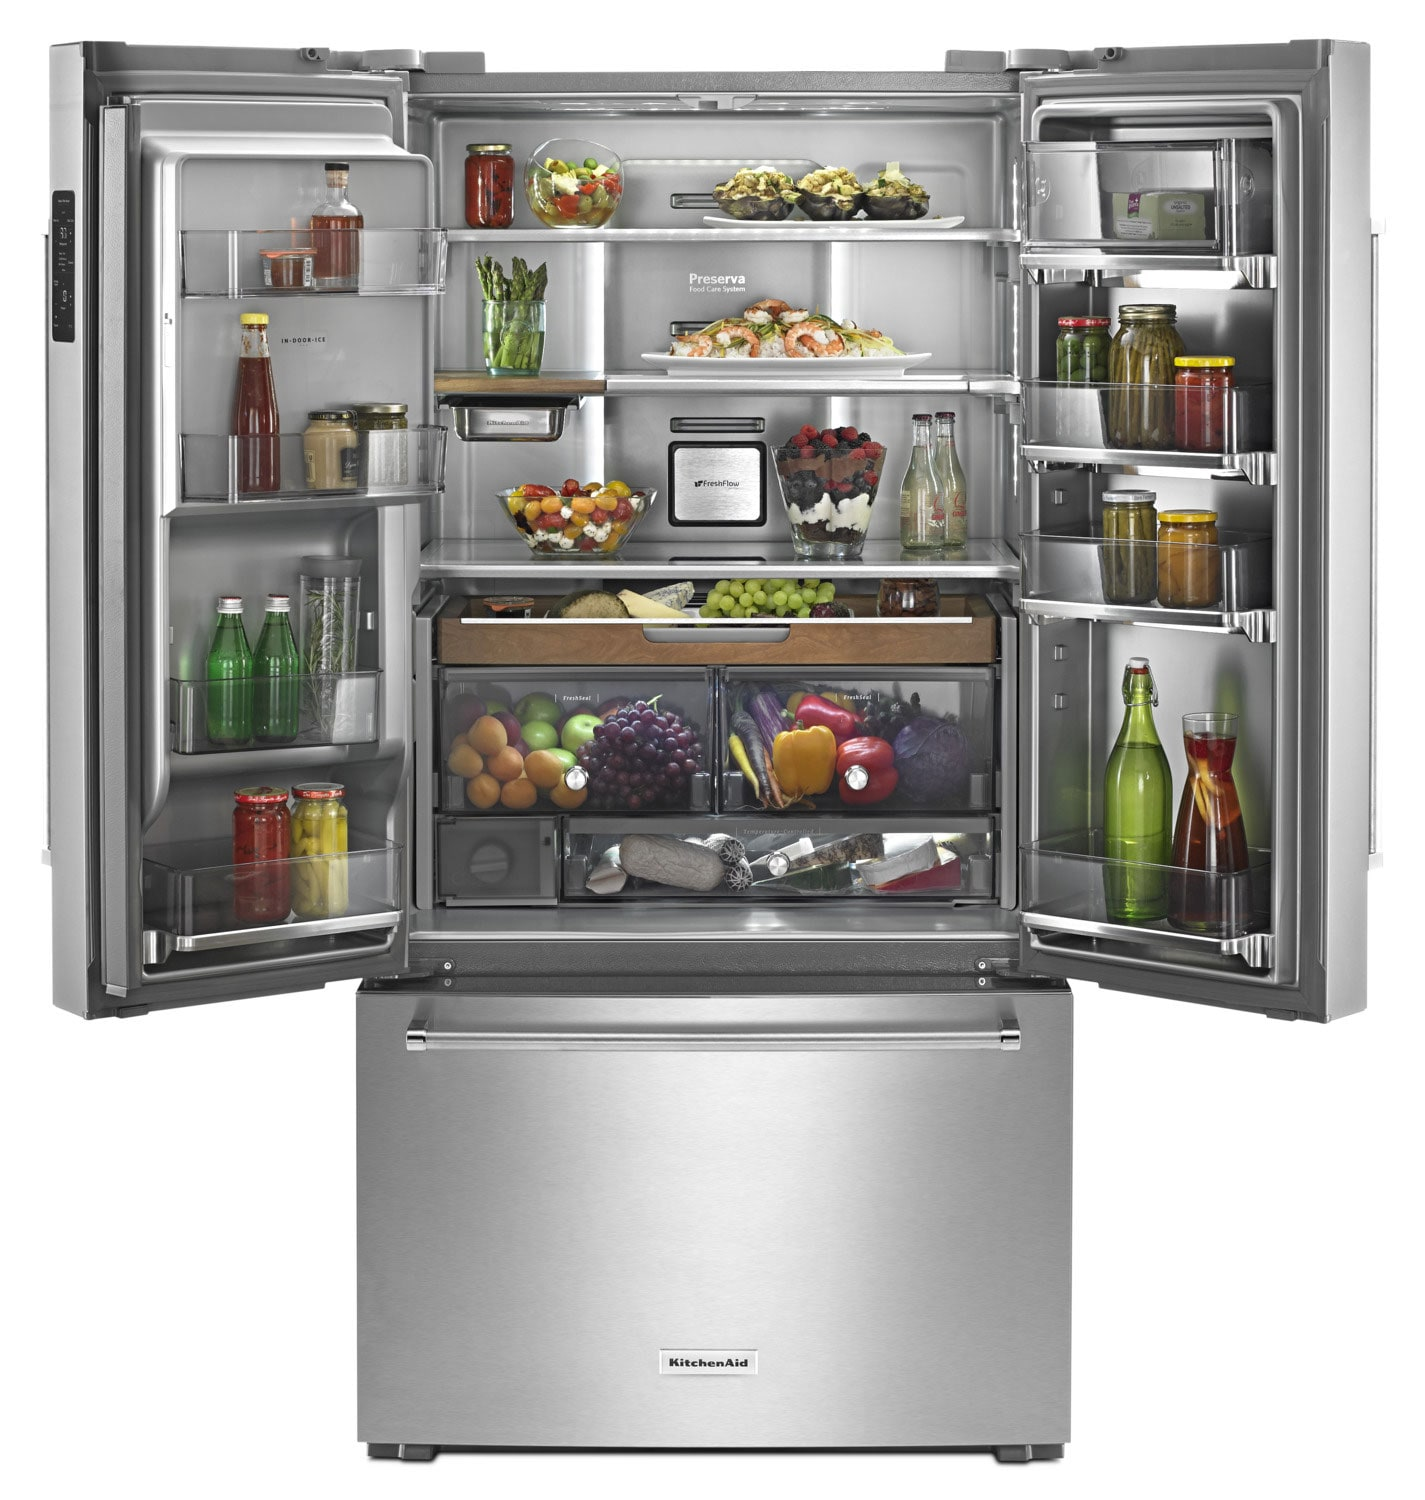 Kitchenaid 23 8 cu ft french door refrigerator for Kitchenaid refrigerators